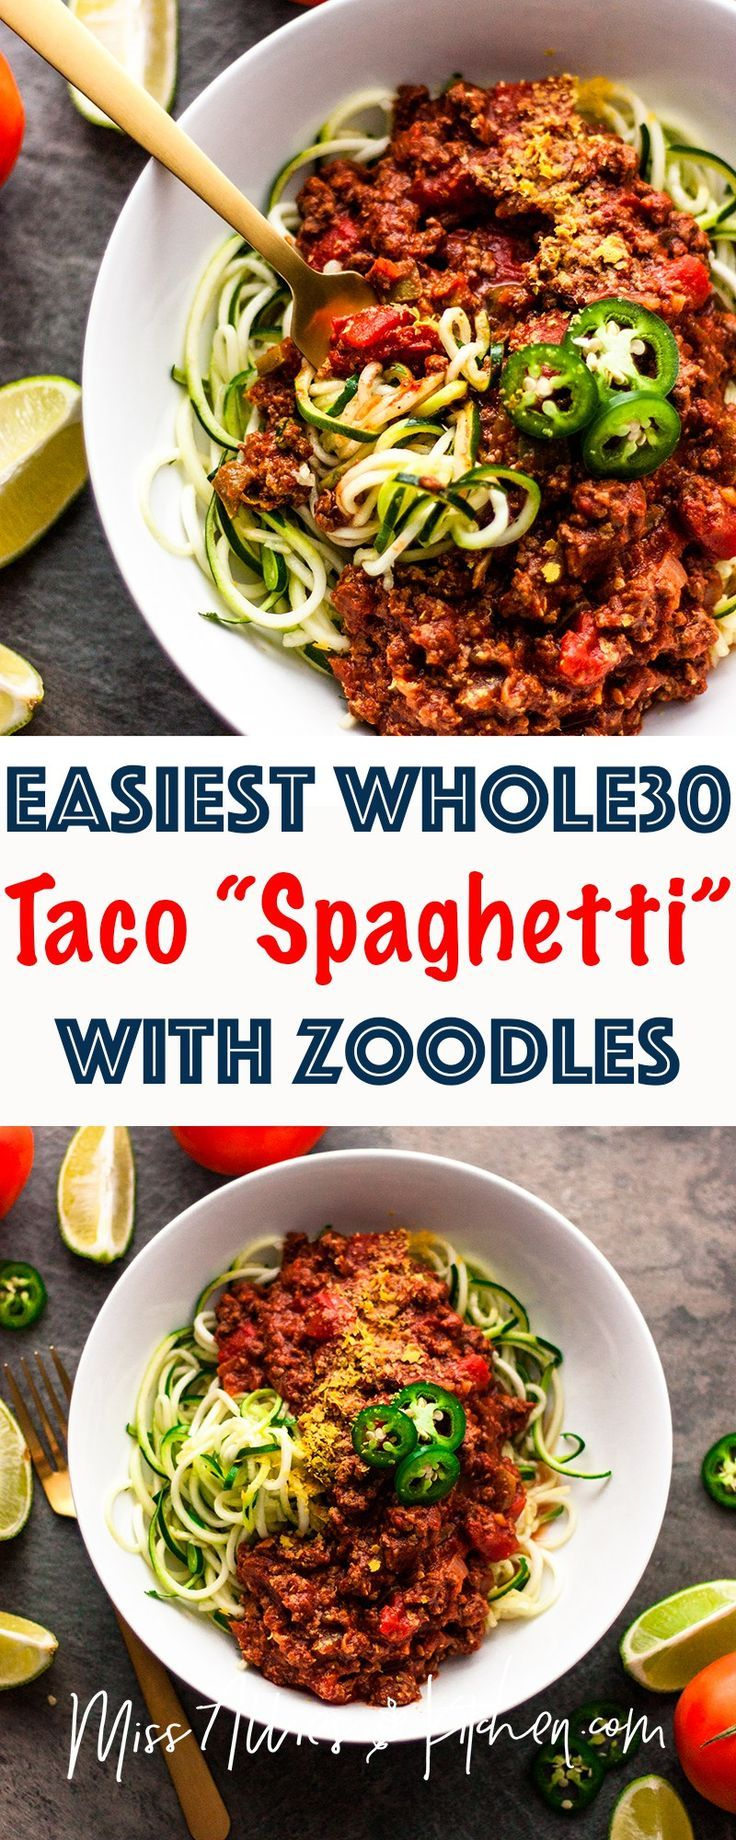 Easiest Whole30 Taco Spaghetti - The perfect low carb meal that follows all of the Whole30 rules. One of the easiest recipes that can be made with ground beef, turkey or venison! You won't believe how easy and tasty it is! #whole30 #whole30approved #dinner #whole30recipes #paleo #easydinner